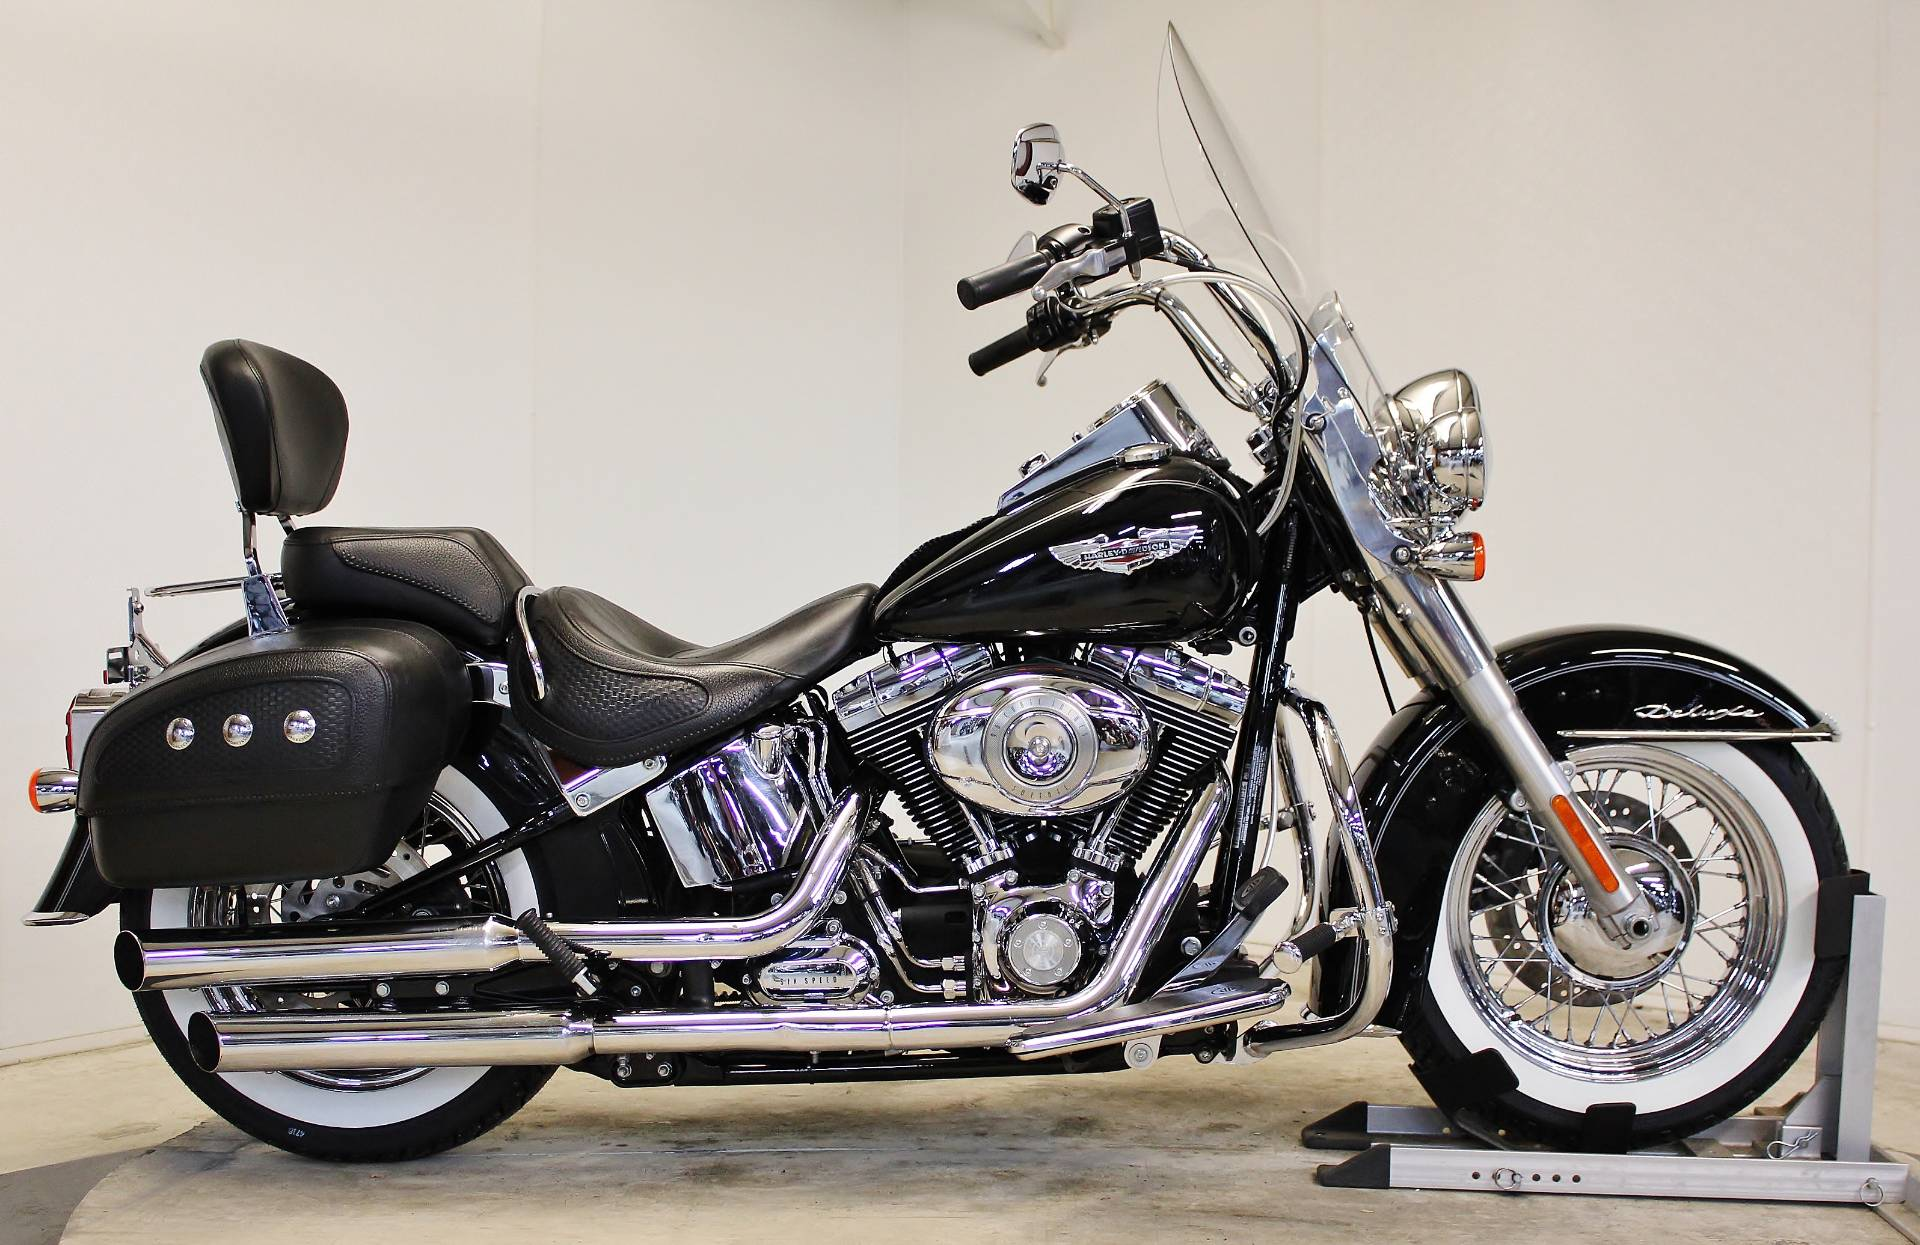 used 2011 harley davidson softail deluxe motorcycles in. Black Bedroom Furniture Sets. Home Design Ideas